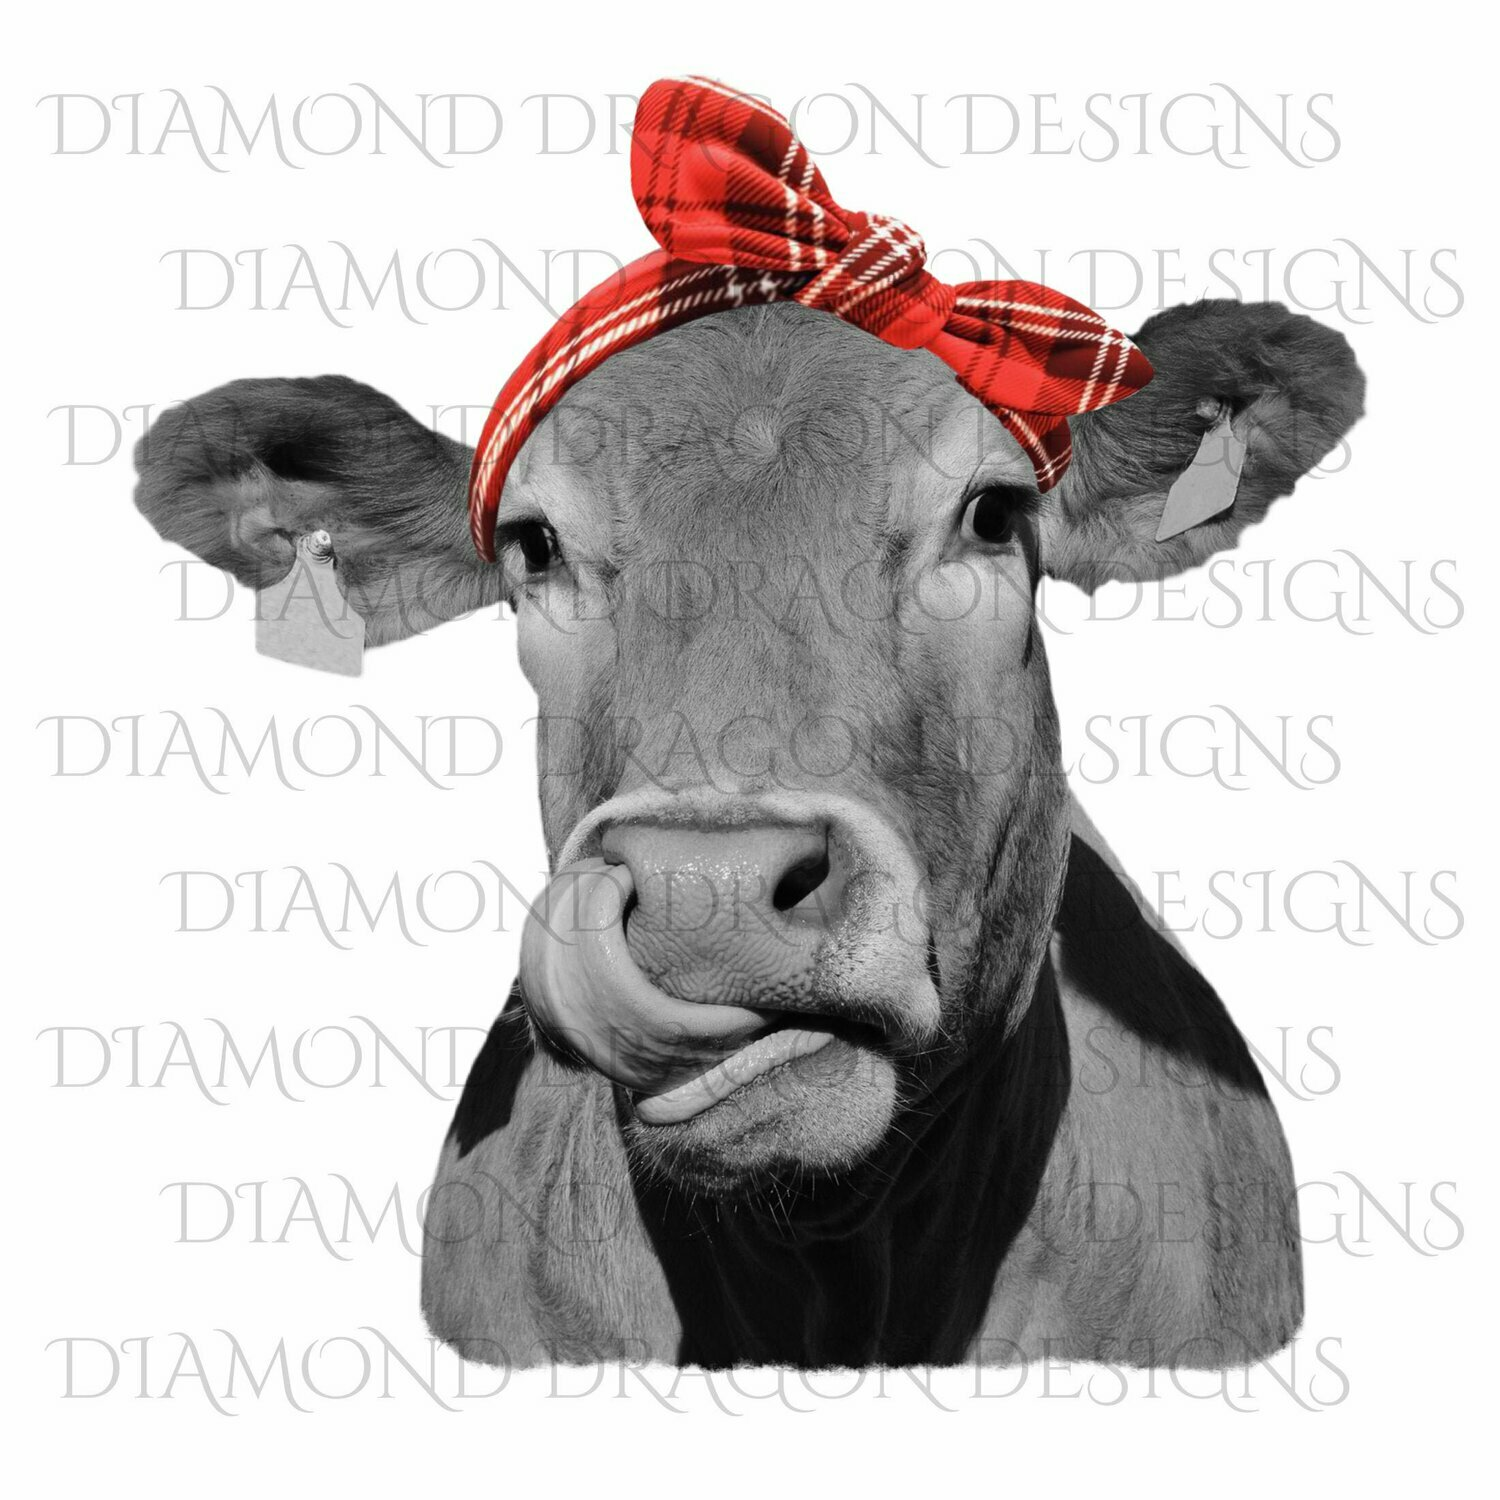 Cows - Heifer, Image, Cute Cow with Red Plaid Bandana, Cowlick, Cow Tongue Out, Waterslide